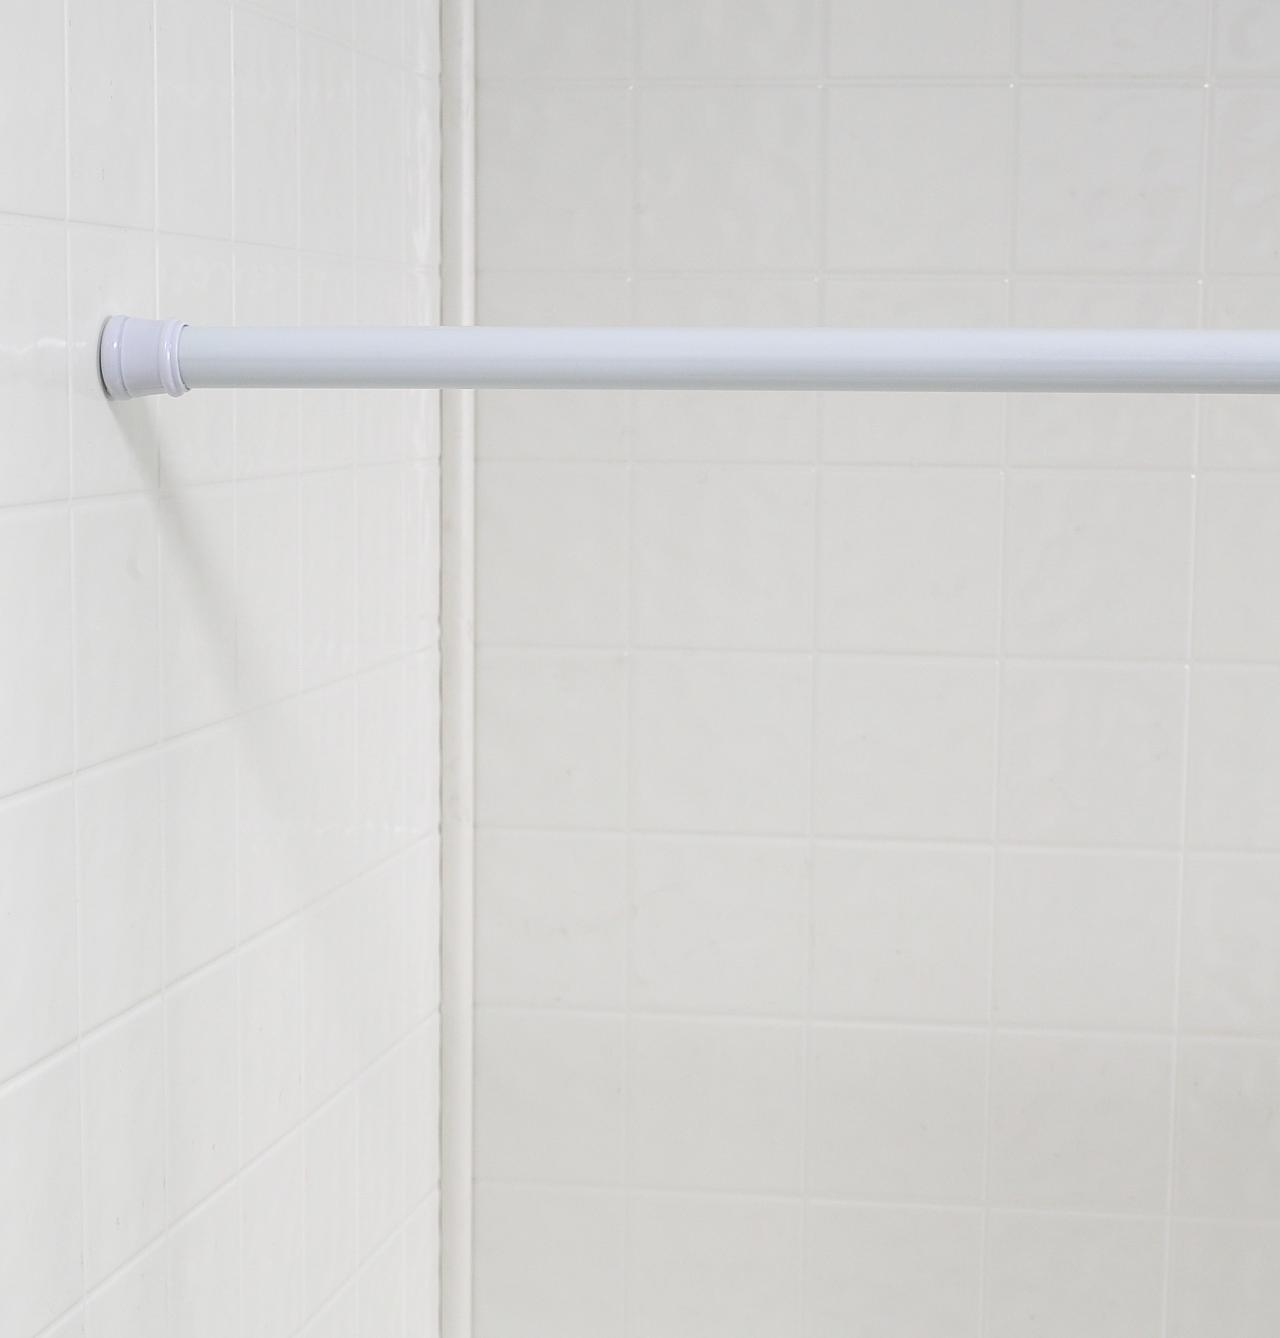 Shower Curtain Tension Rod | Shower Rod Tension | Shower Curtains for Curved Rods